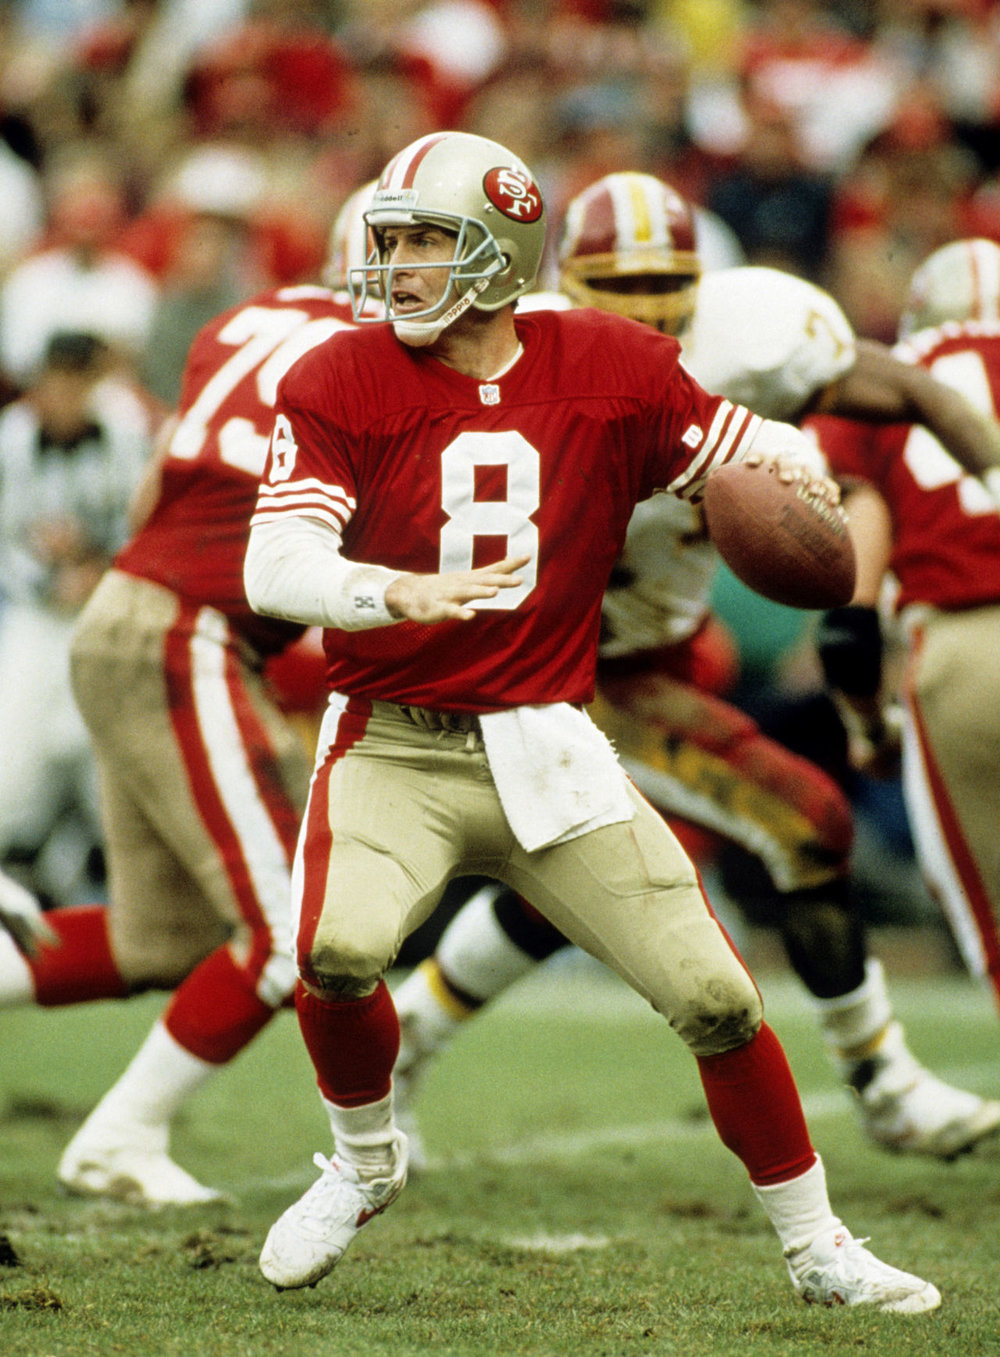 Quarterback Steve Young of the 49ers